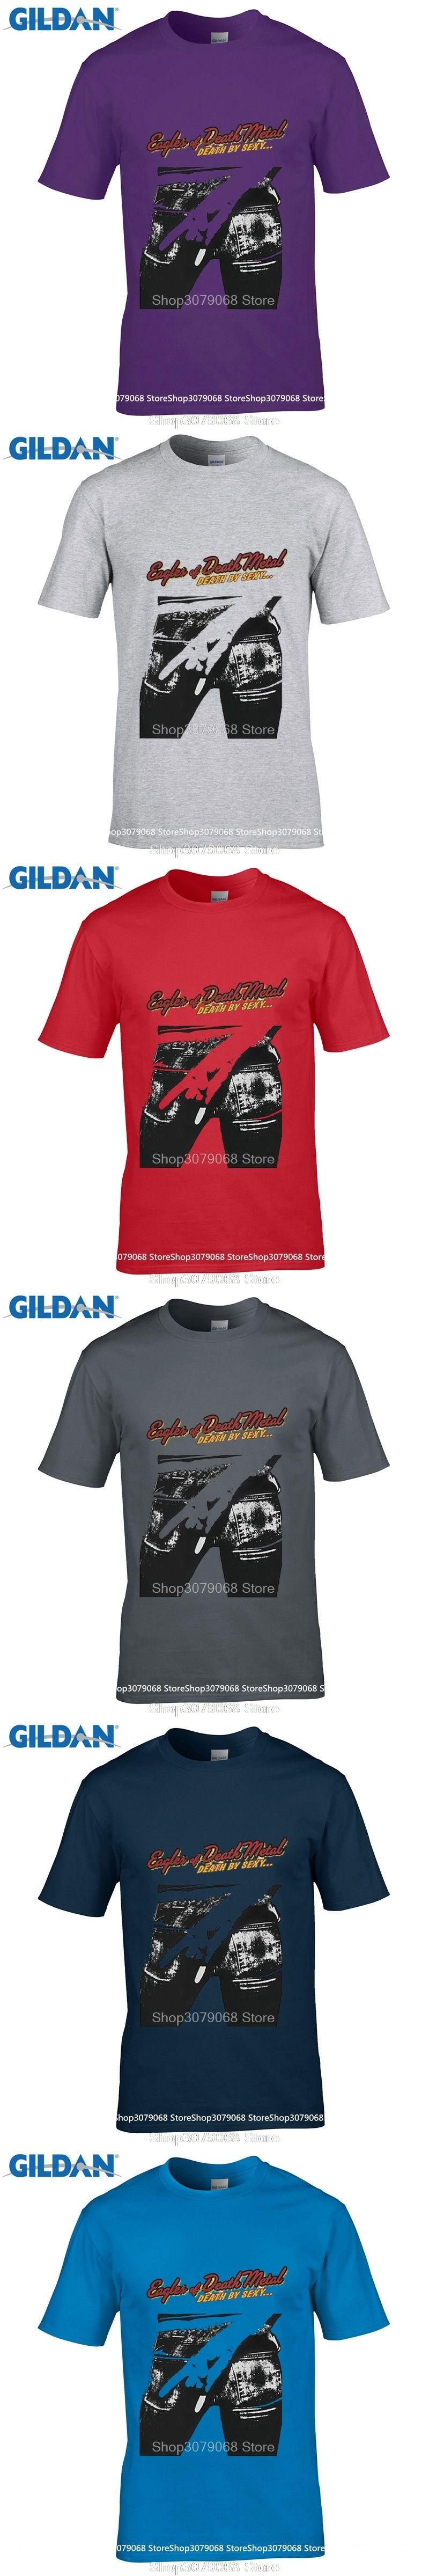 600ca4f81efe2d GILDAN style s t shirts Solid Color Eagles Of Death Metal Death By Sexy  Alternative O-